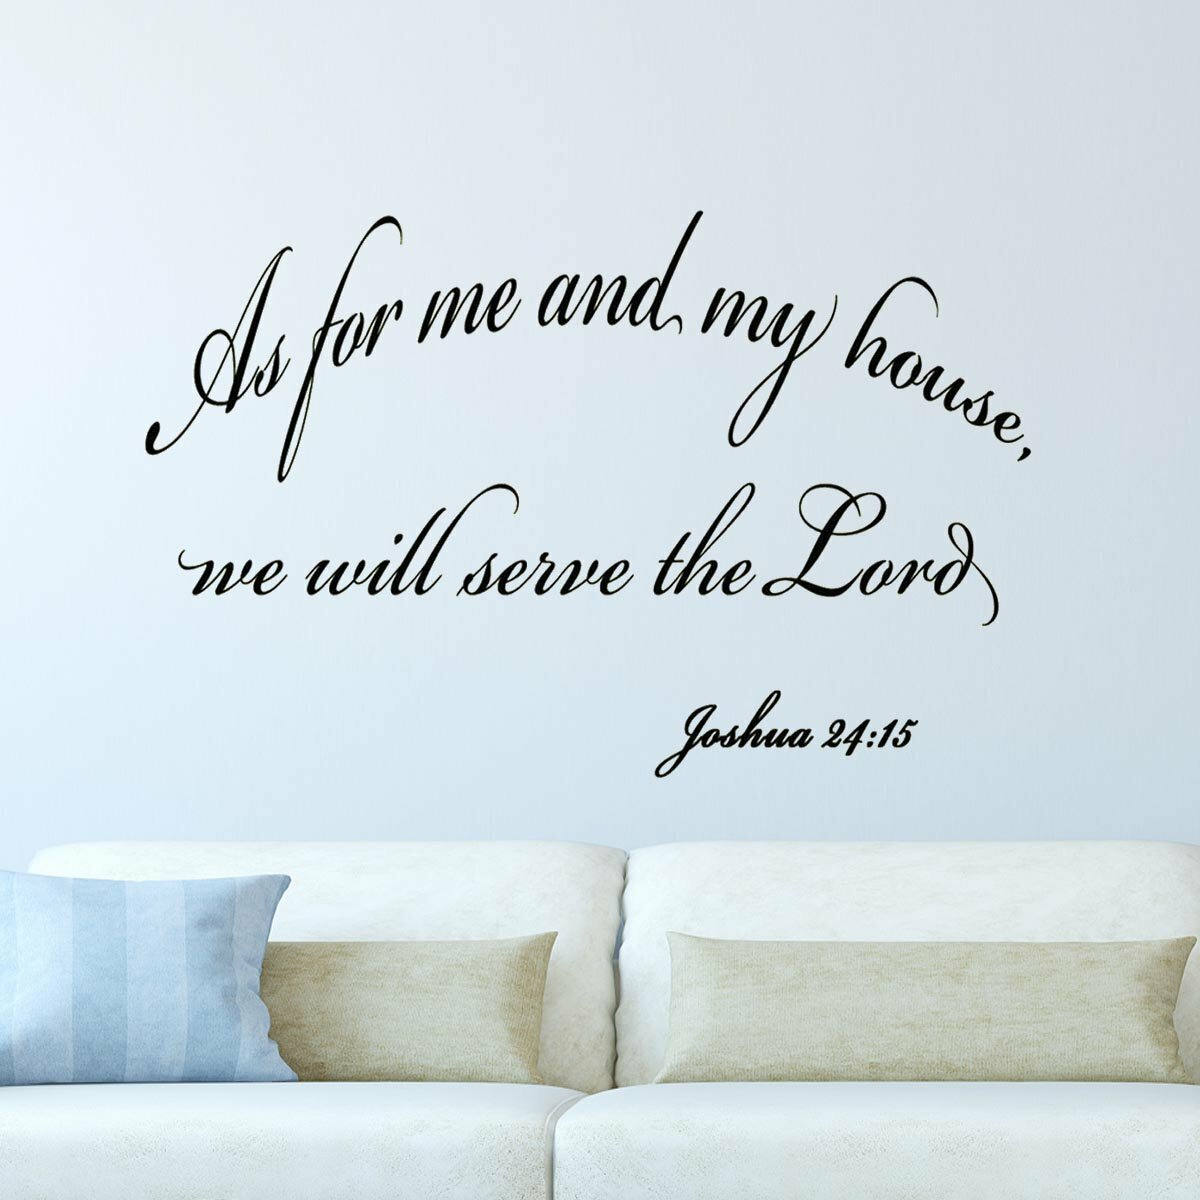 As For Me And My House We Will Server The Lord Vinyl Wall Decal Sticker Bible